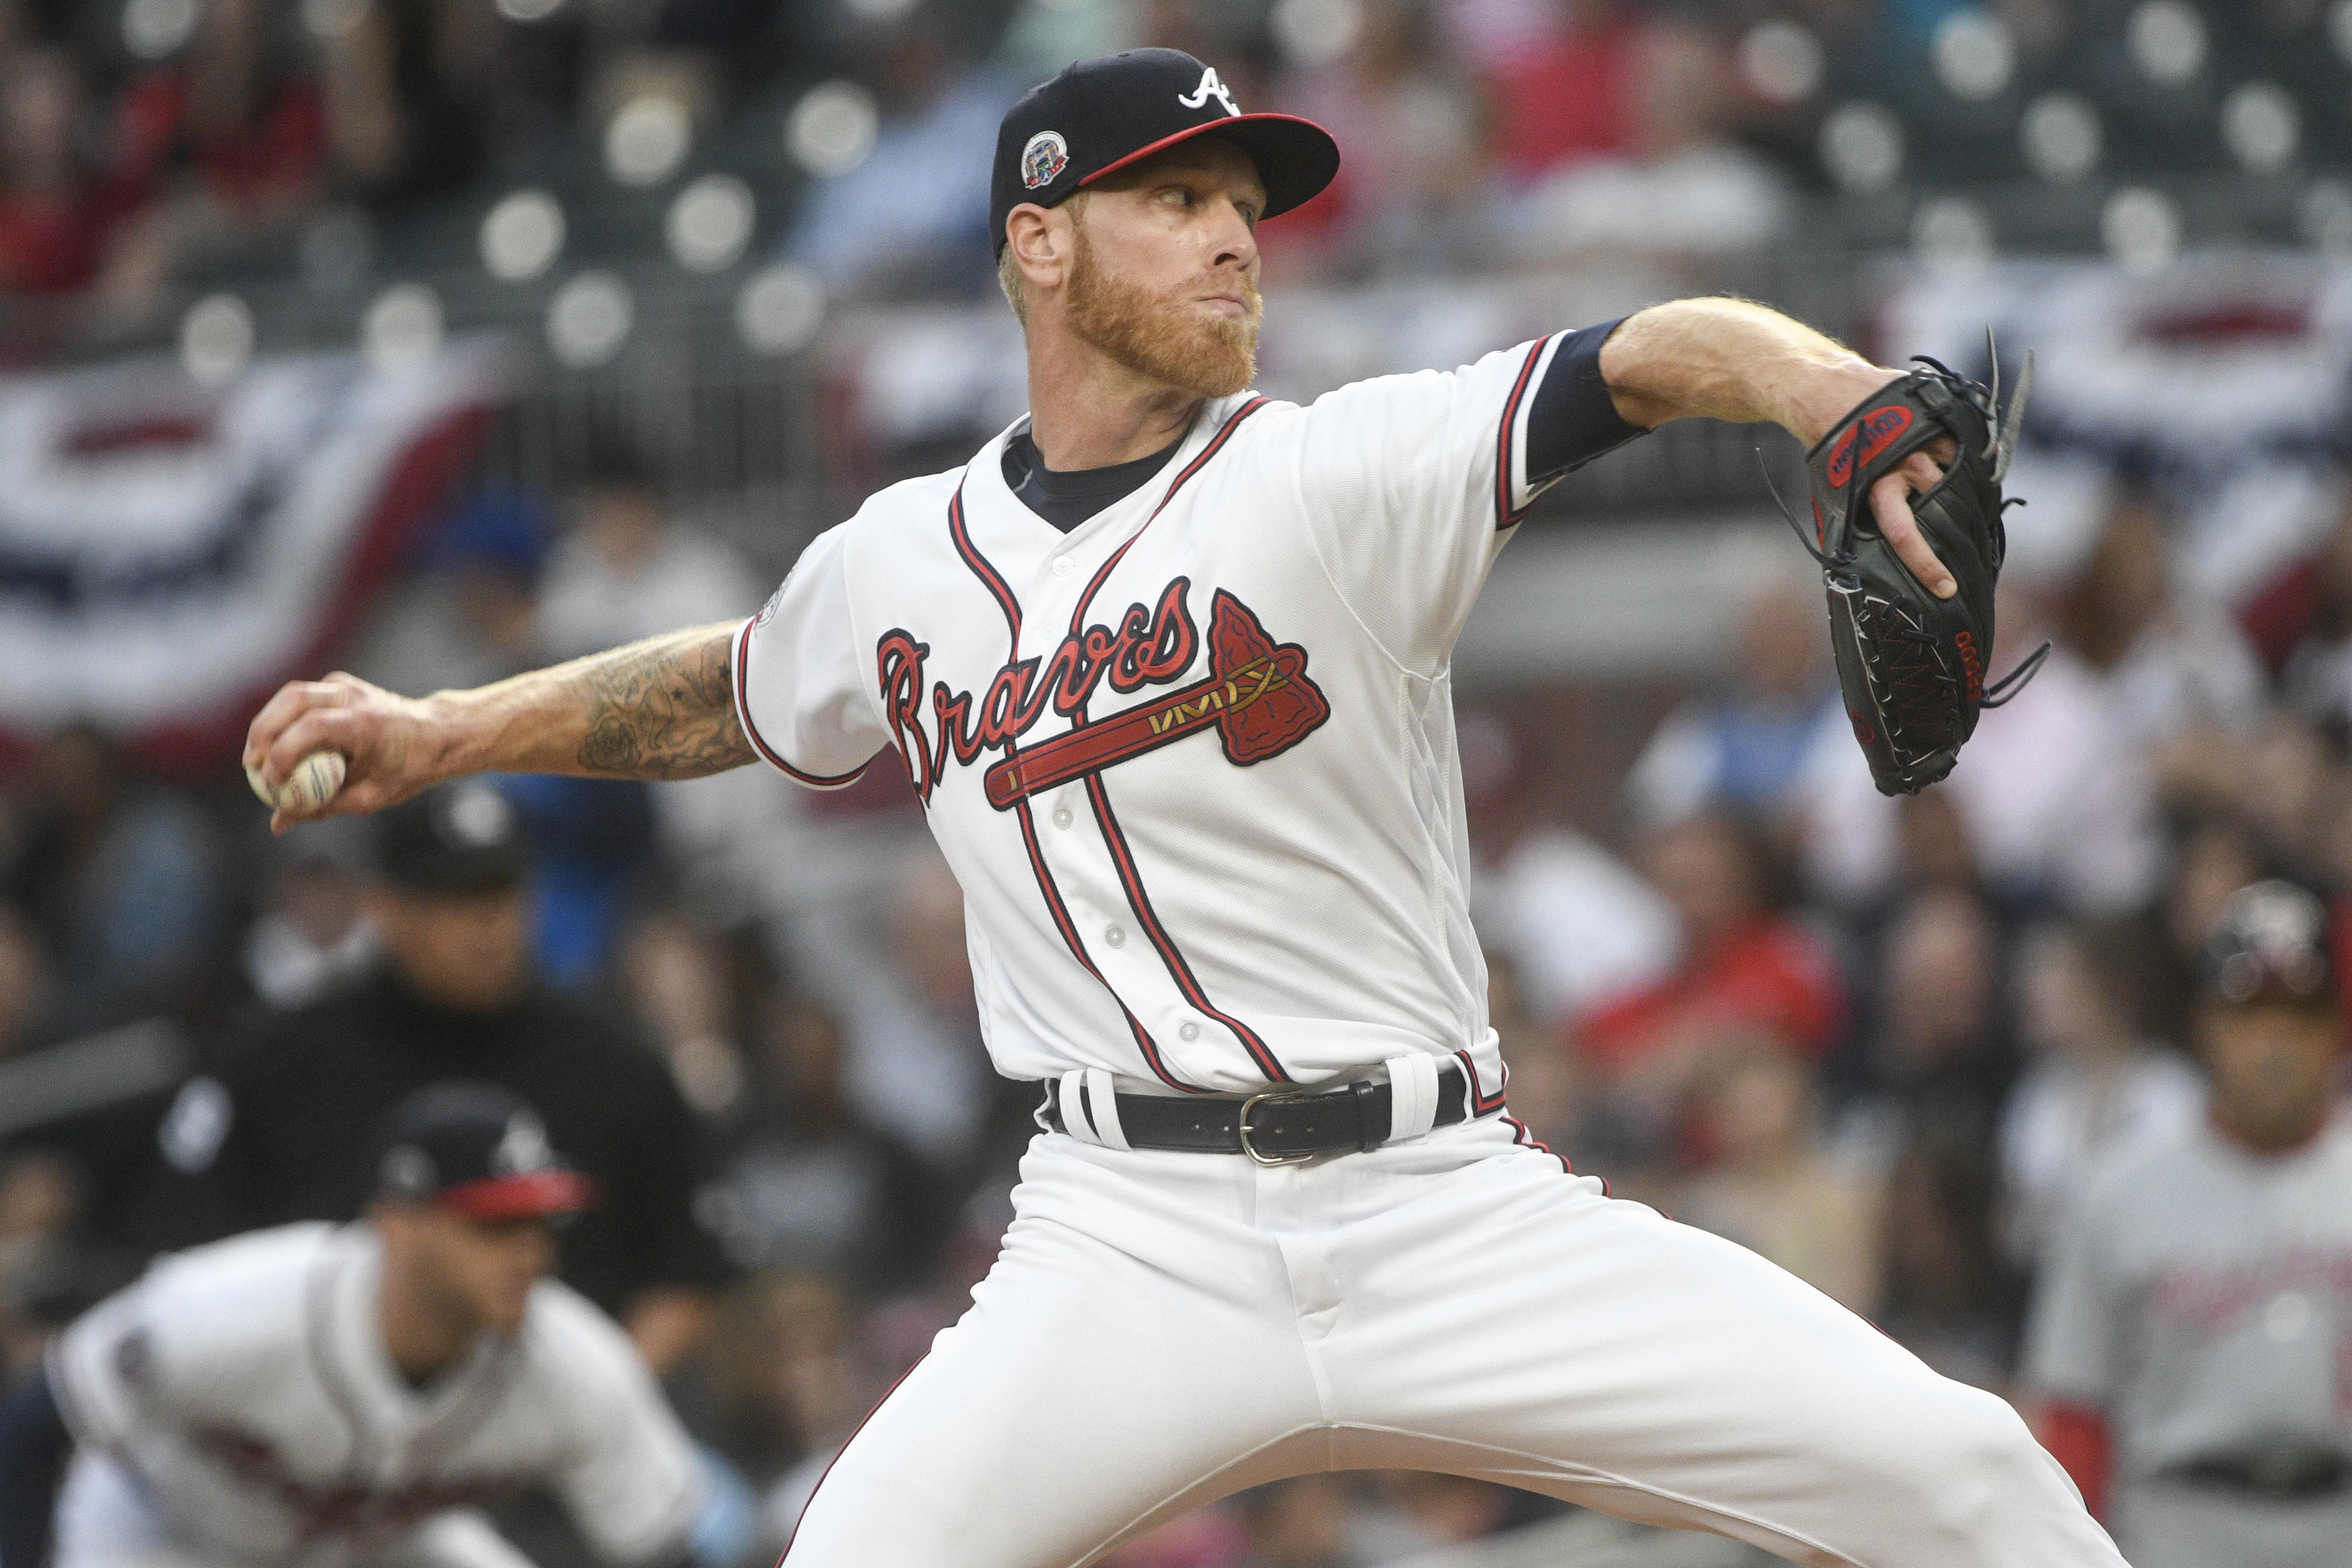 Atlanta Braves' Mike Foltynewicz pitches against the Washington Nationals during the first inning of a baseball game, Tuesday, April 18, 2017, in Atlanta. (AP Photo/John Amis)